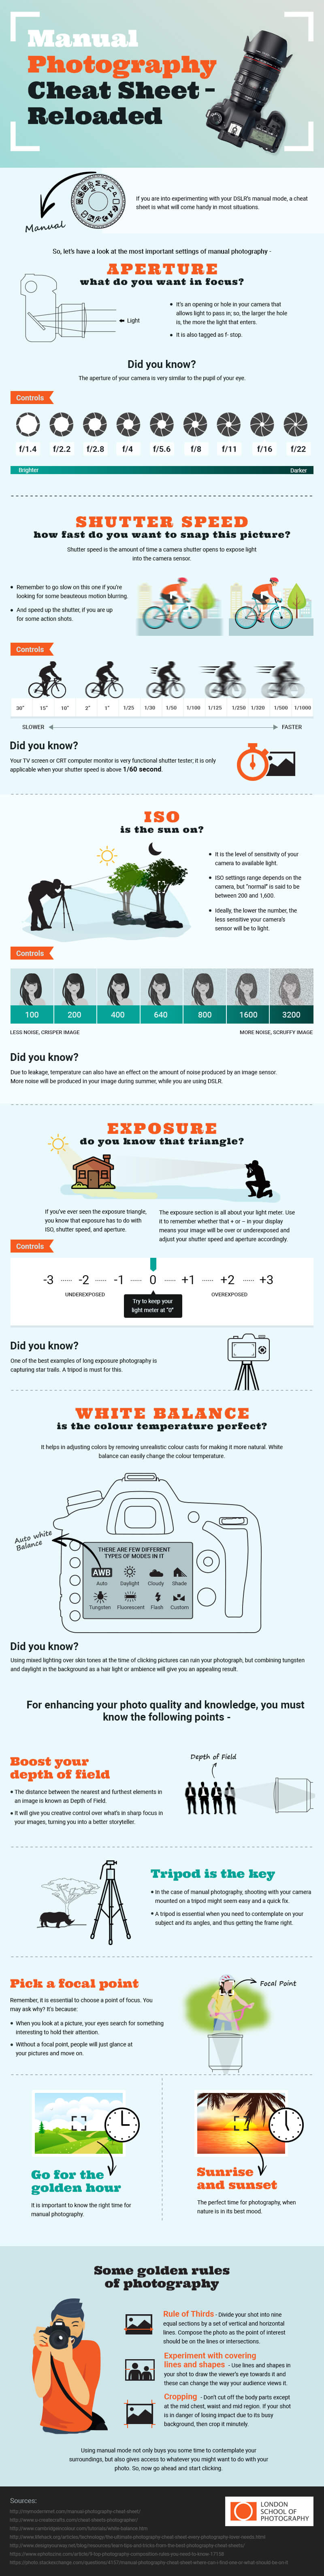 What every photographer should know about manual mode source credit london school of photography fandeluxe Gallery